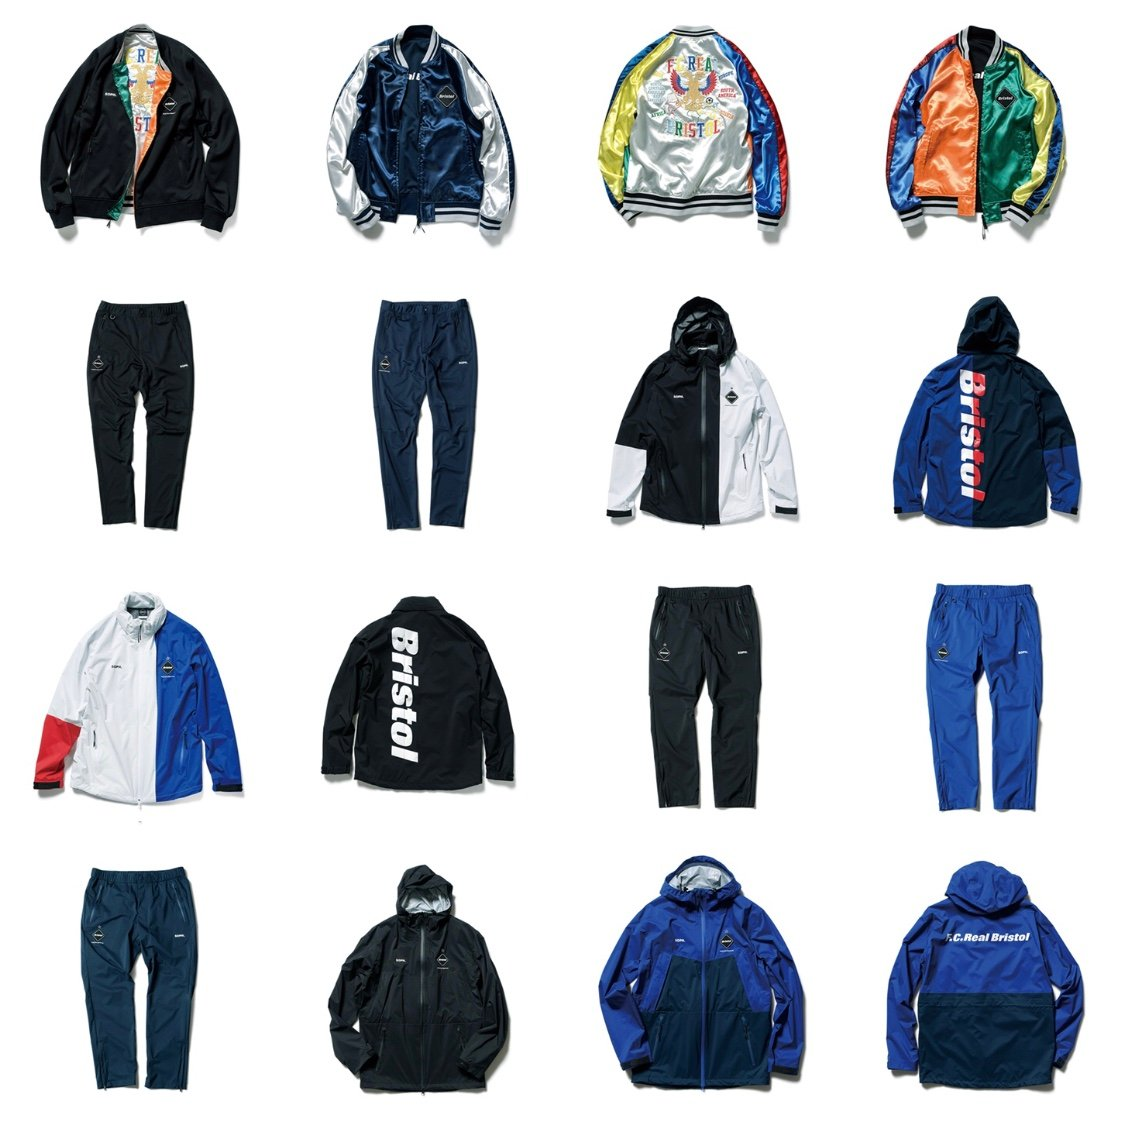 fcrb-2018ss-launch-20180224